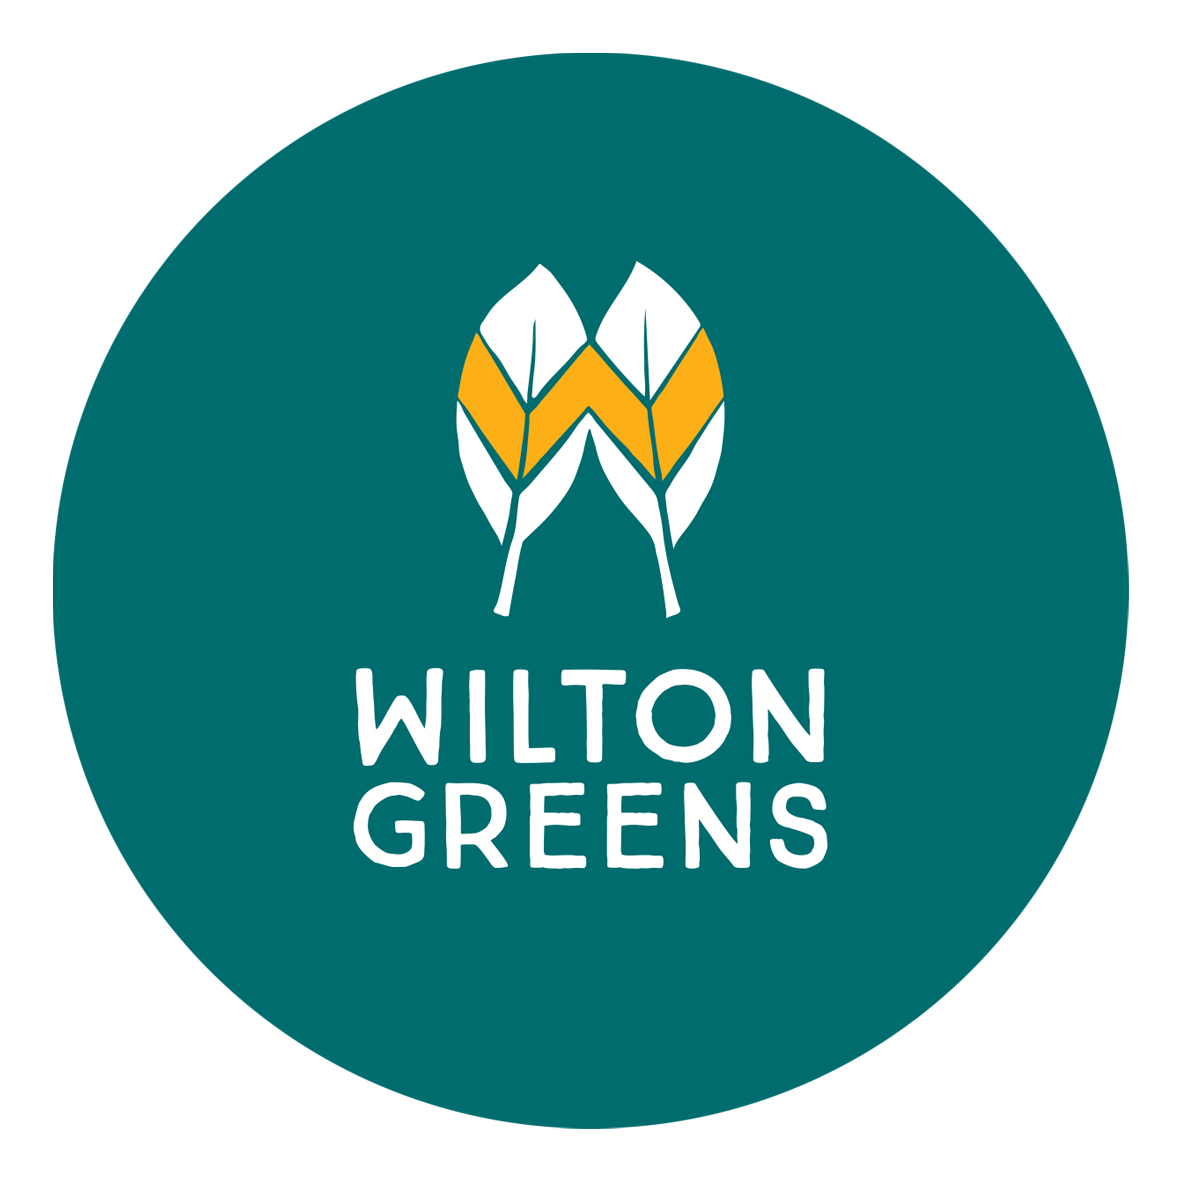 WiltonsGreensLOGO